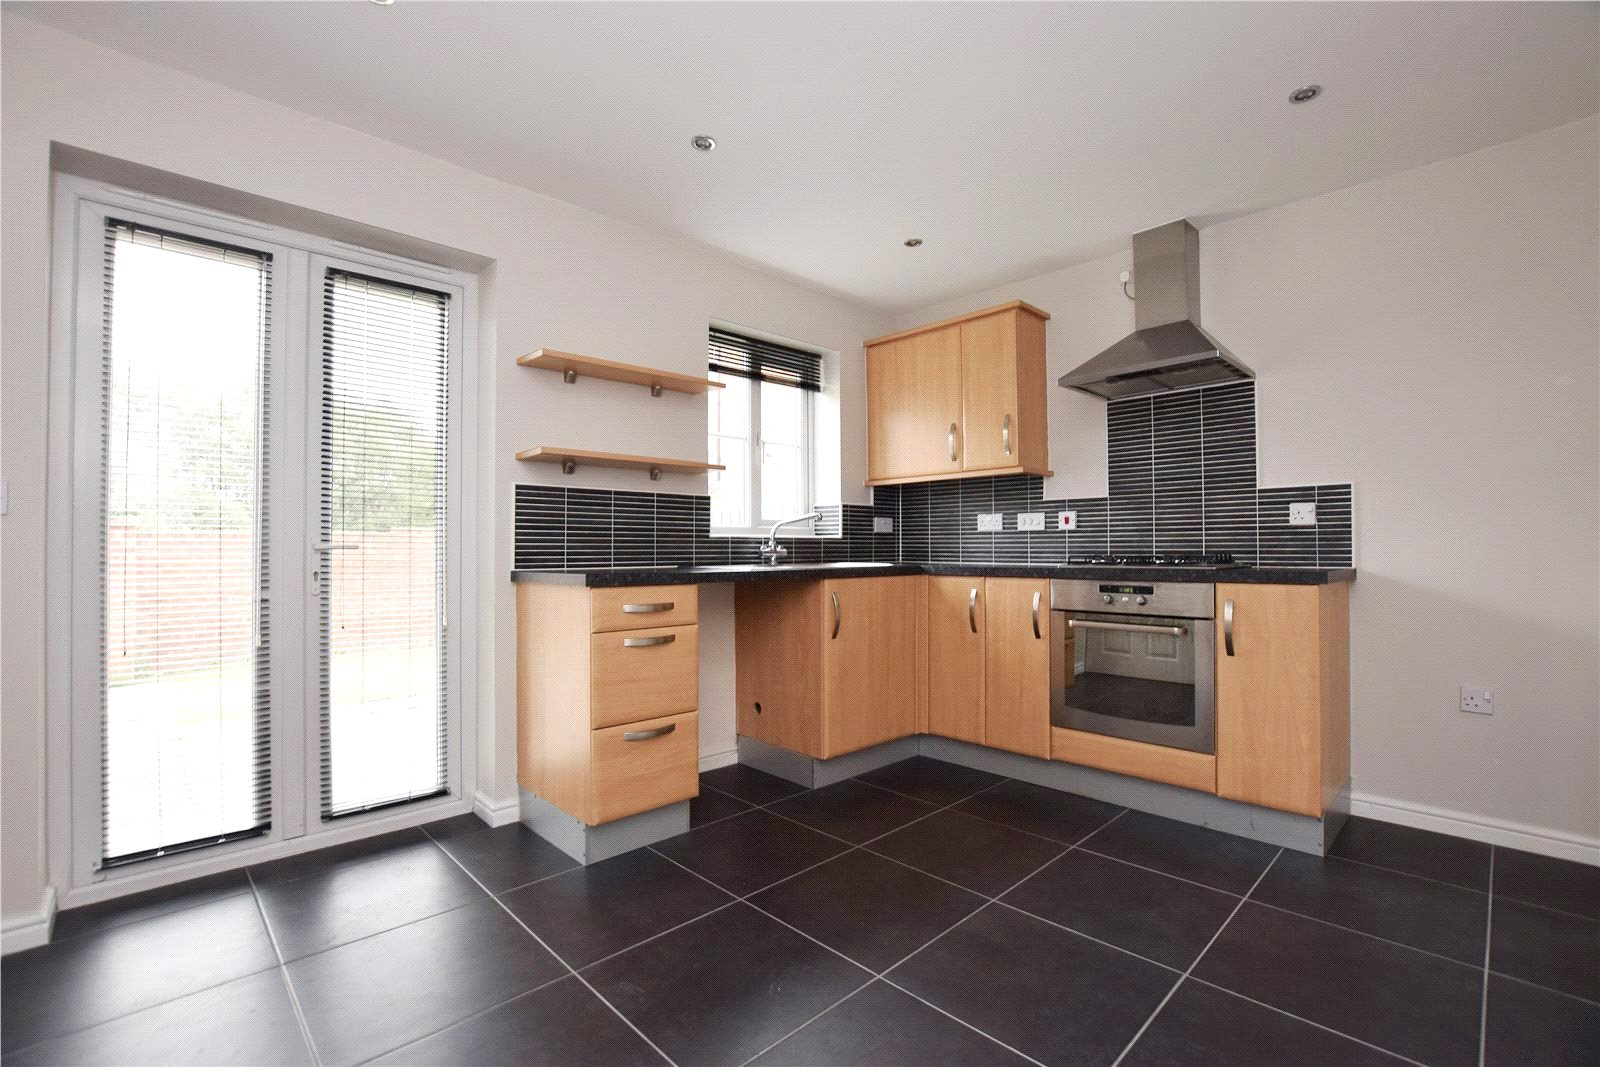 property for sale in Leeds, fitted L kitchen built in cooker